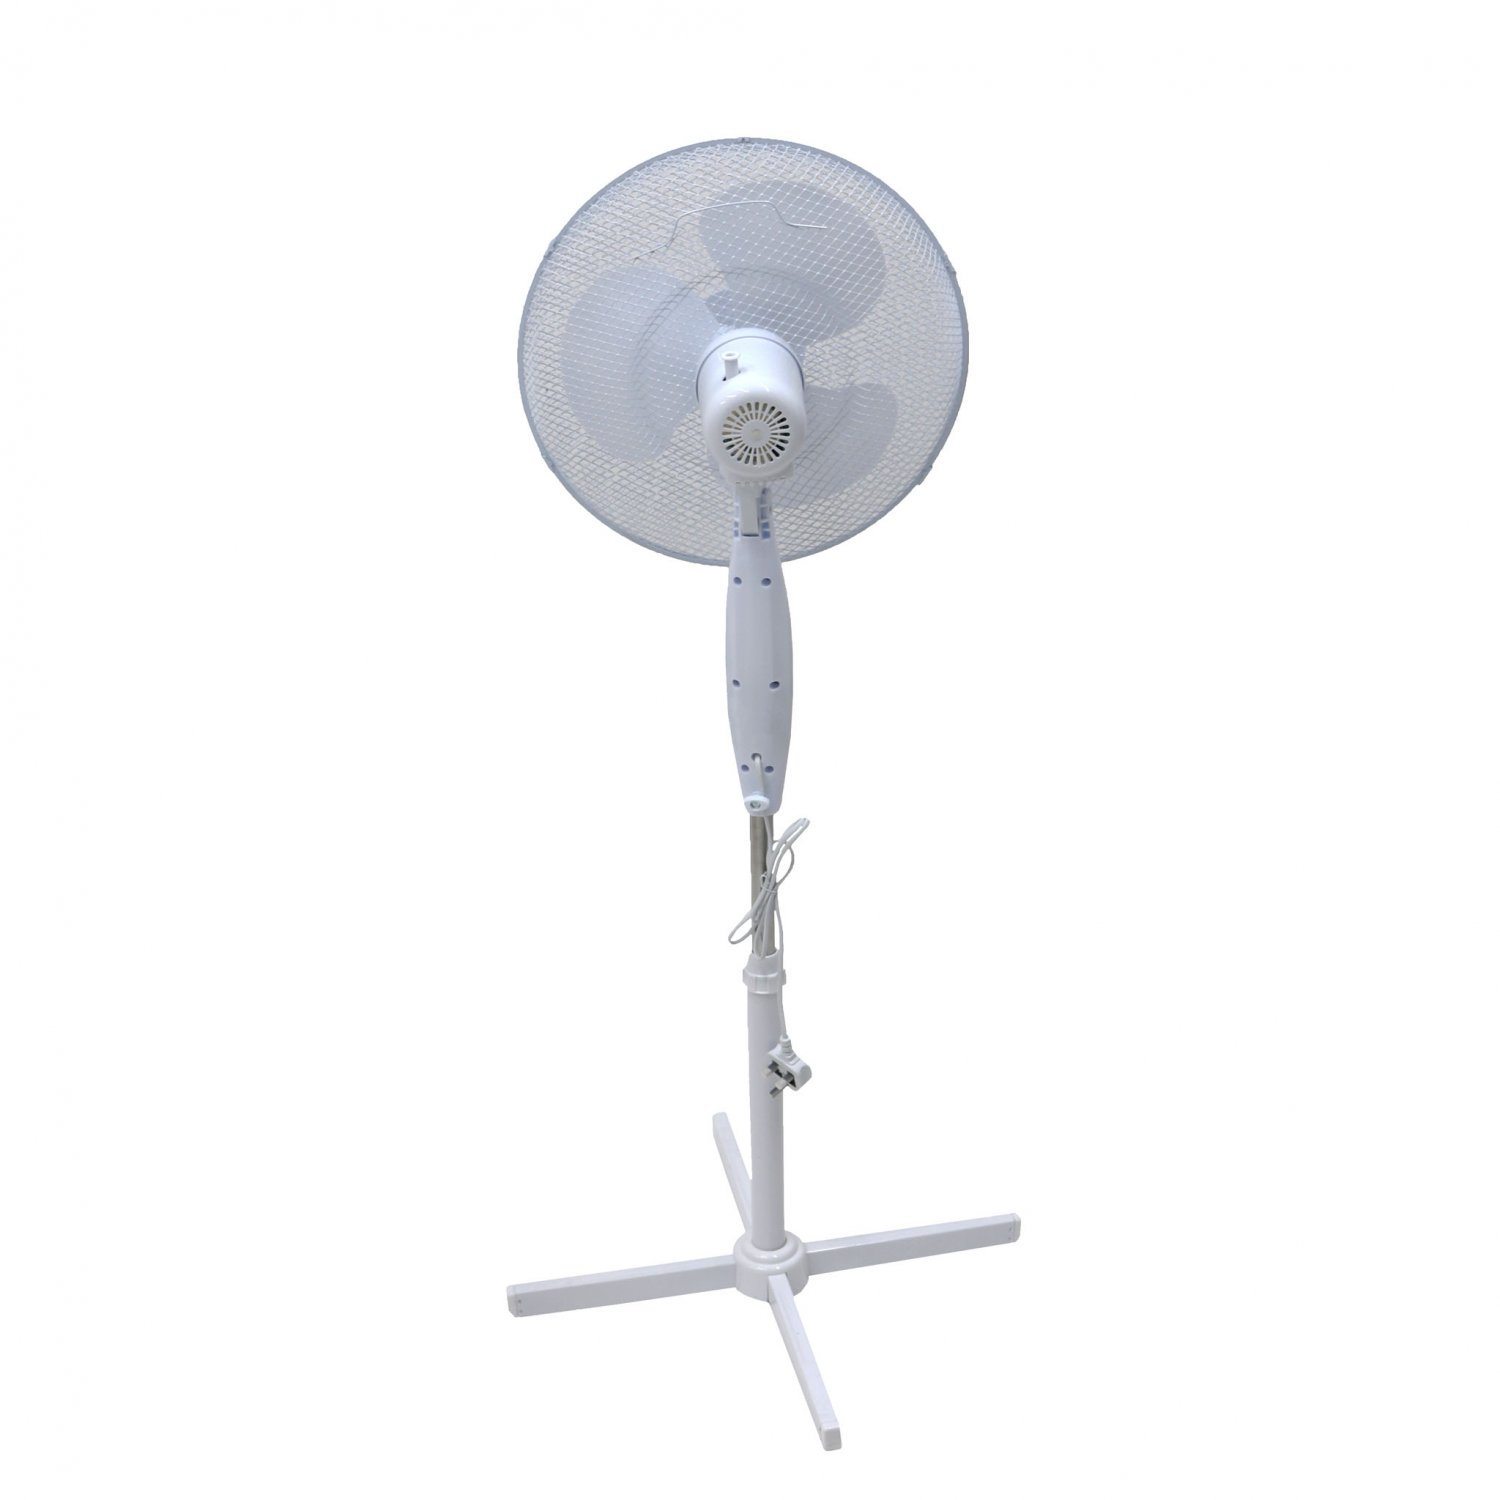 "(RL120) 16"" Oscillating Pedestal Electric Fan The fan head oscillates and tilts which m... - Image 2 of 2"